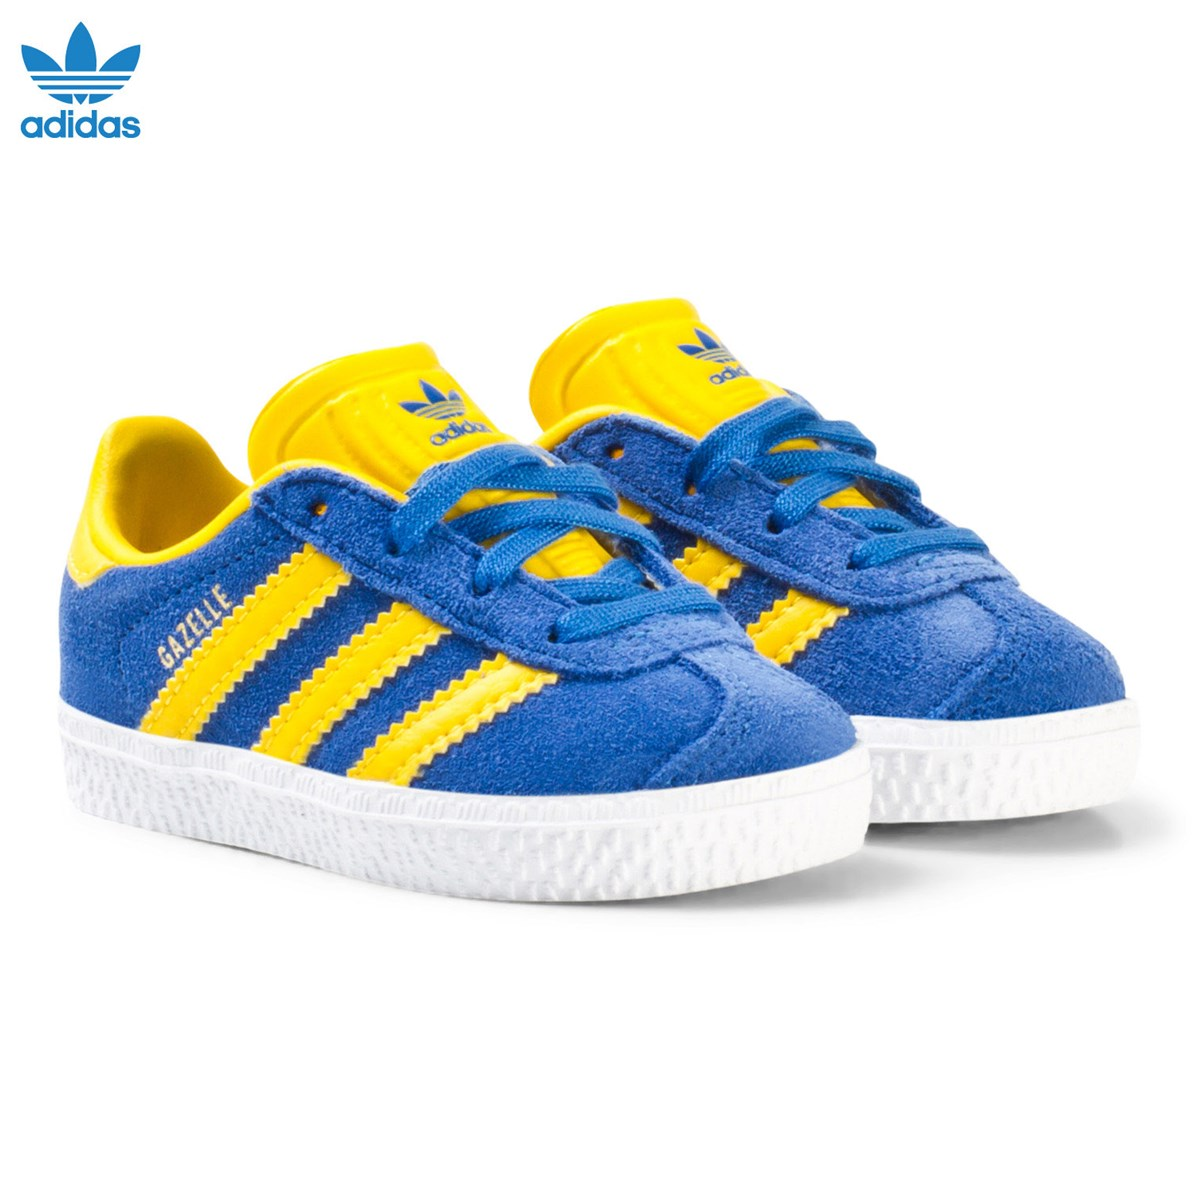 adidas Originals Blue and Yellow Gazelle Infant Trainers